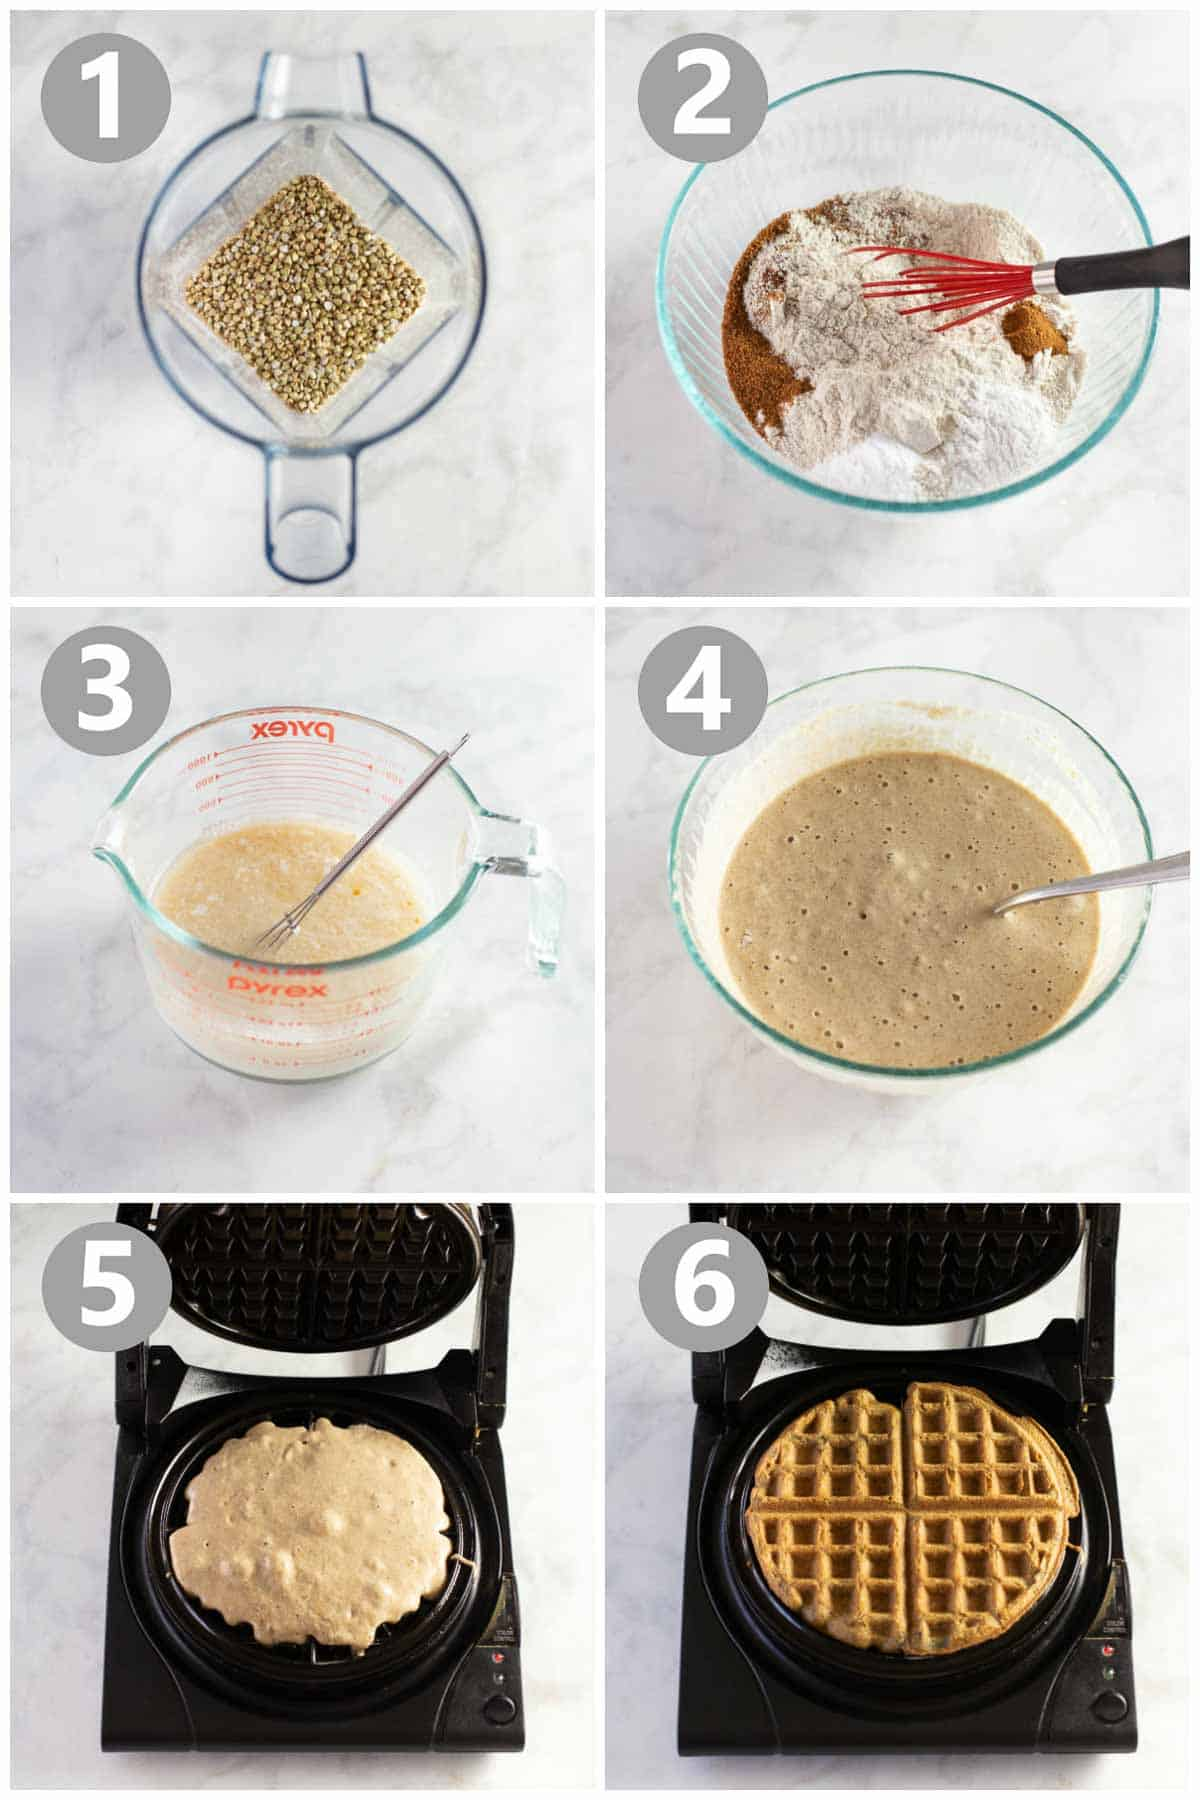 step by step instructions for how to make buckwheat waffles